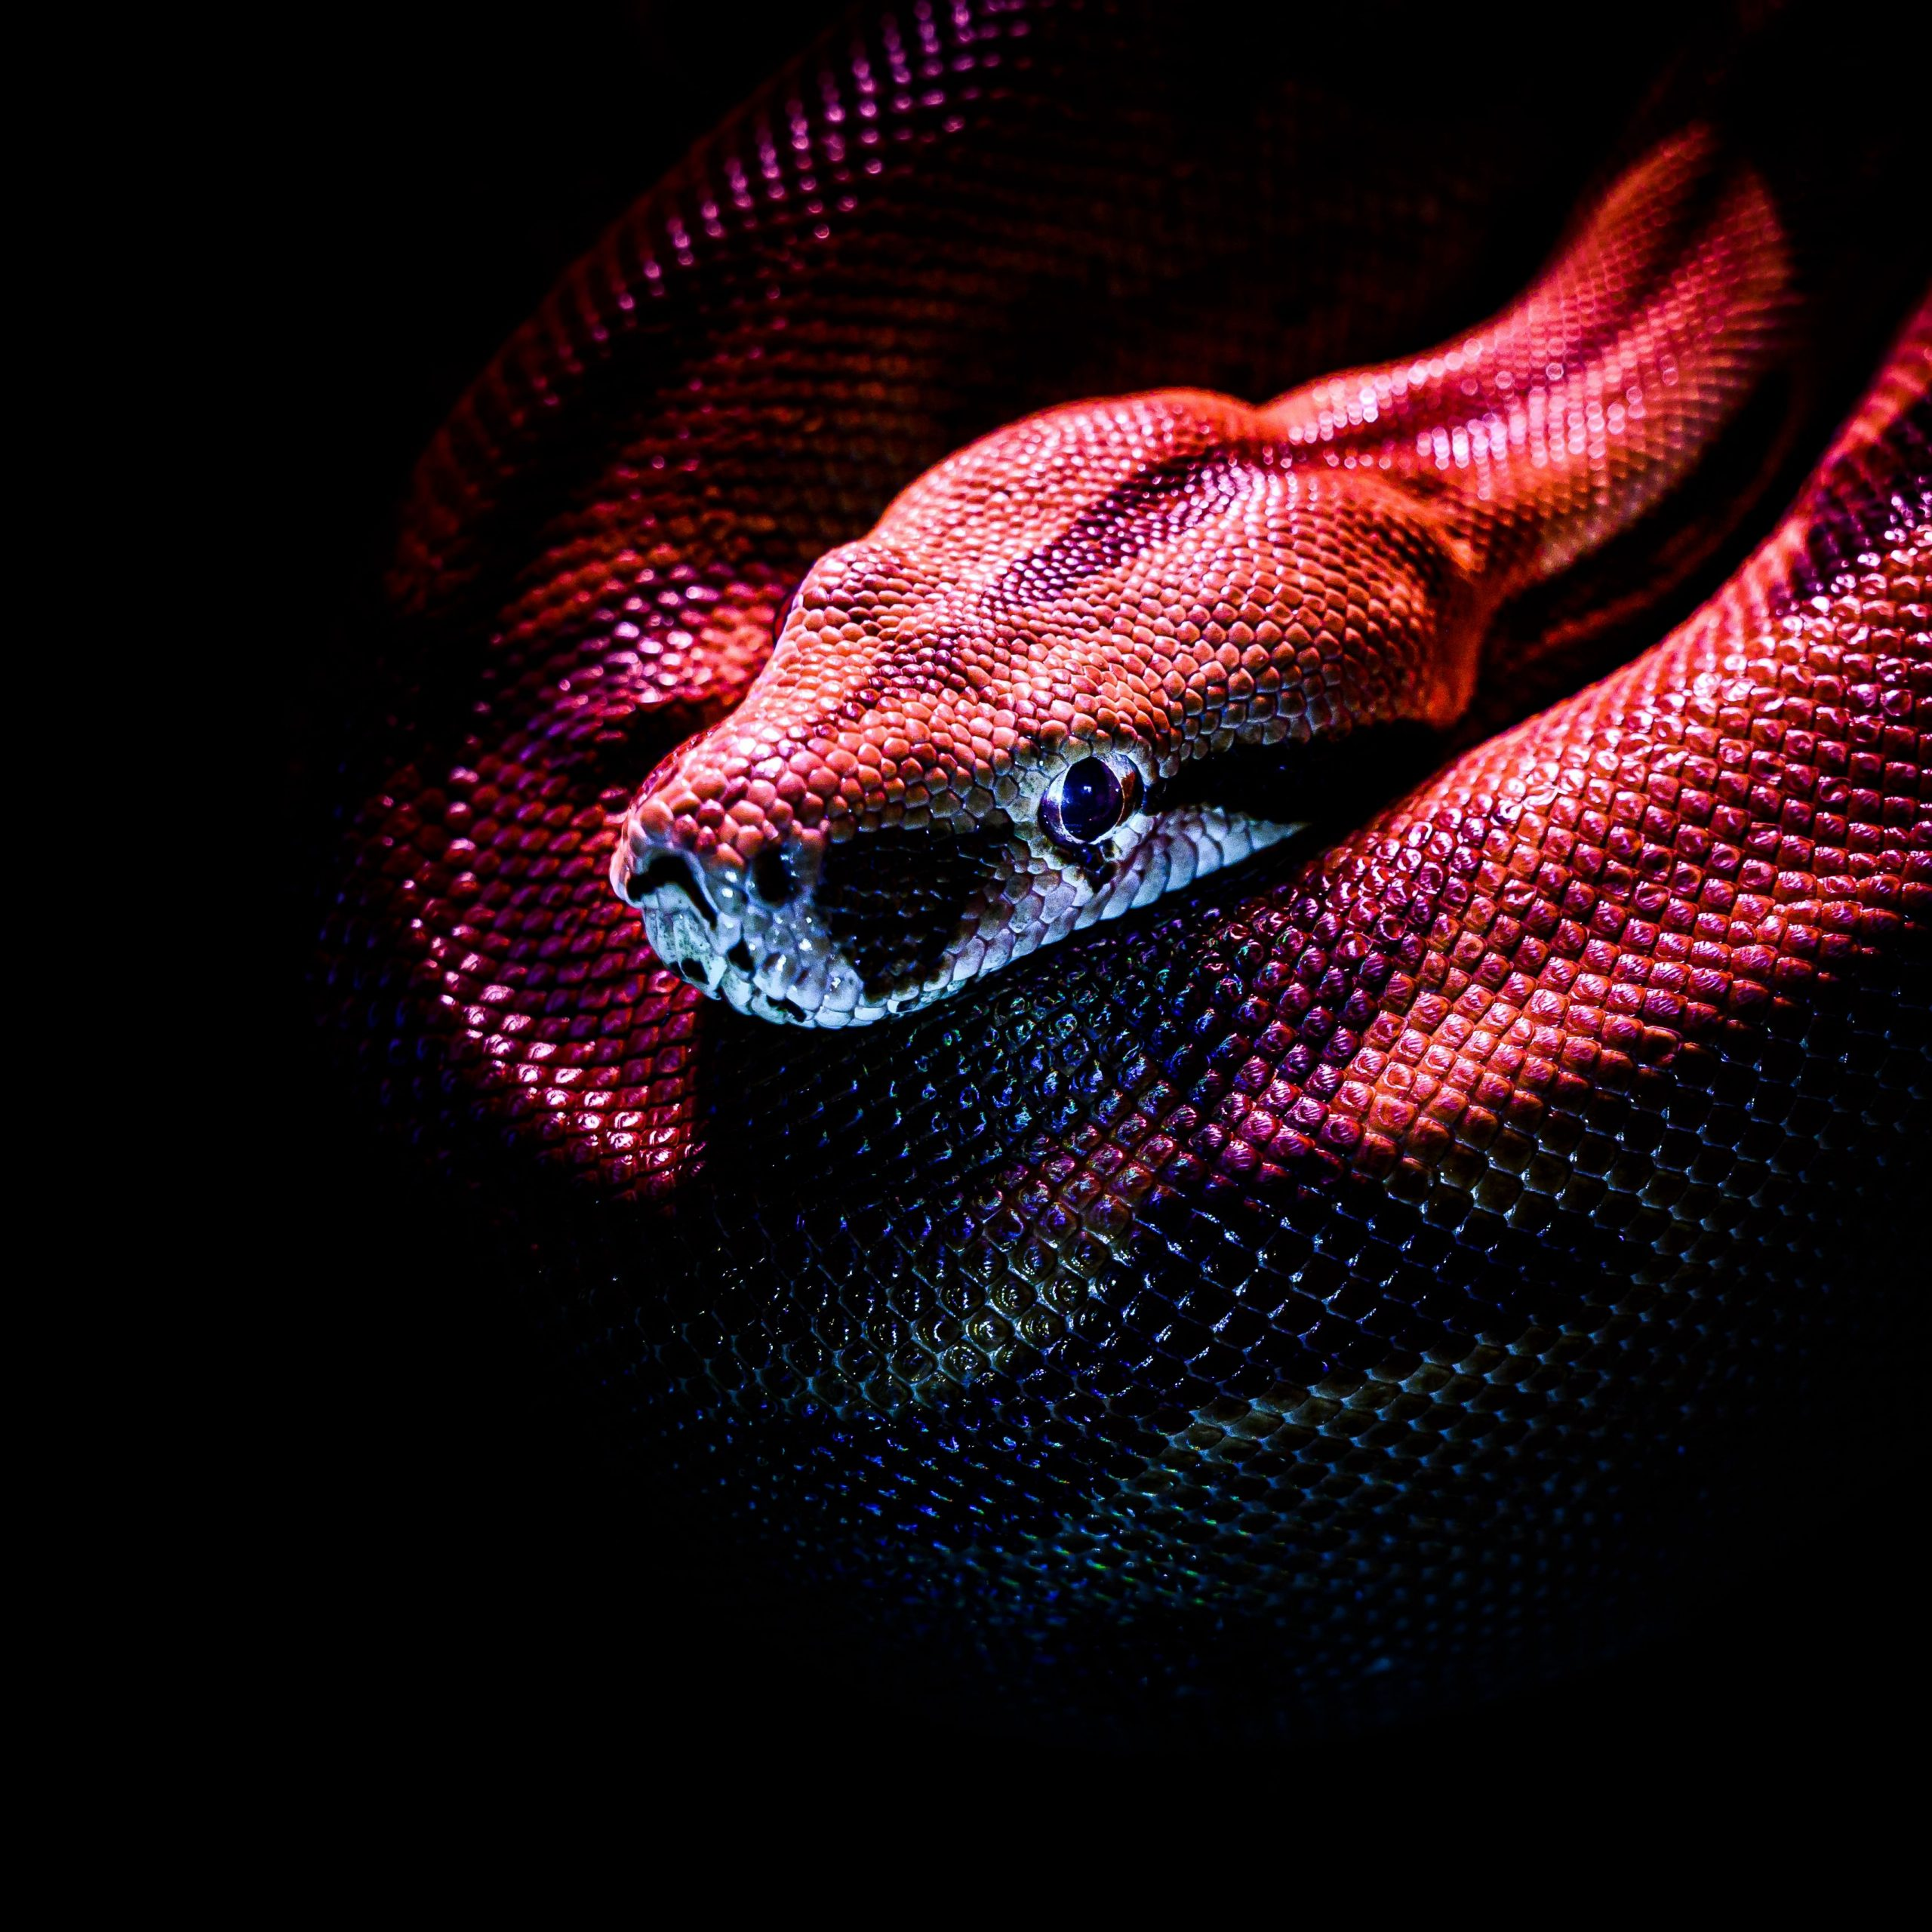 Collection Of Unique Animal 4K Mobile Wallpaper Download For Free